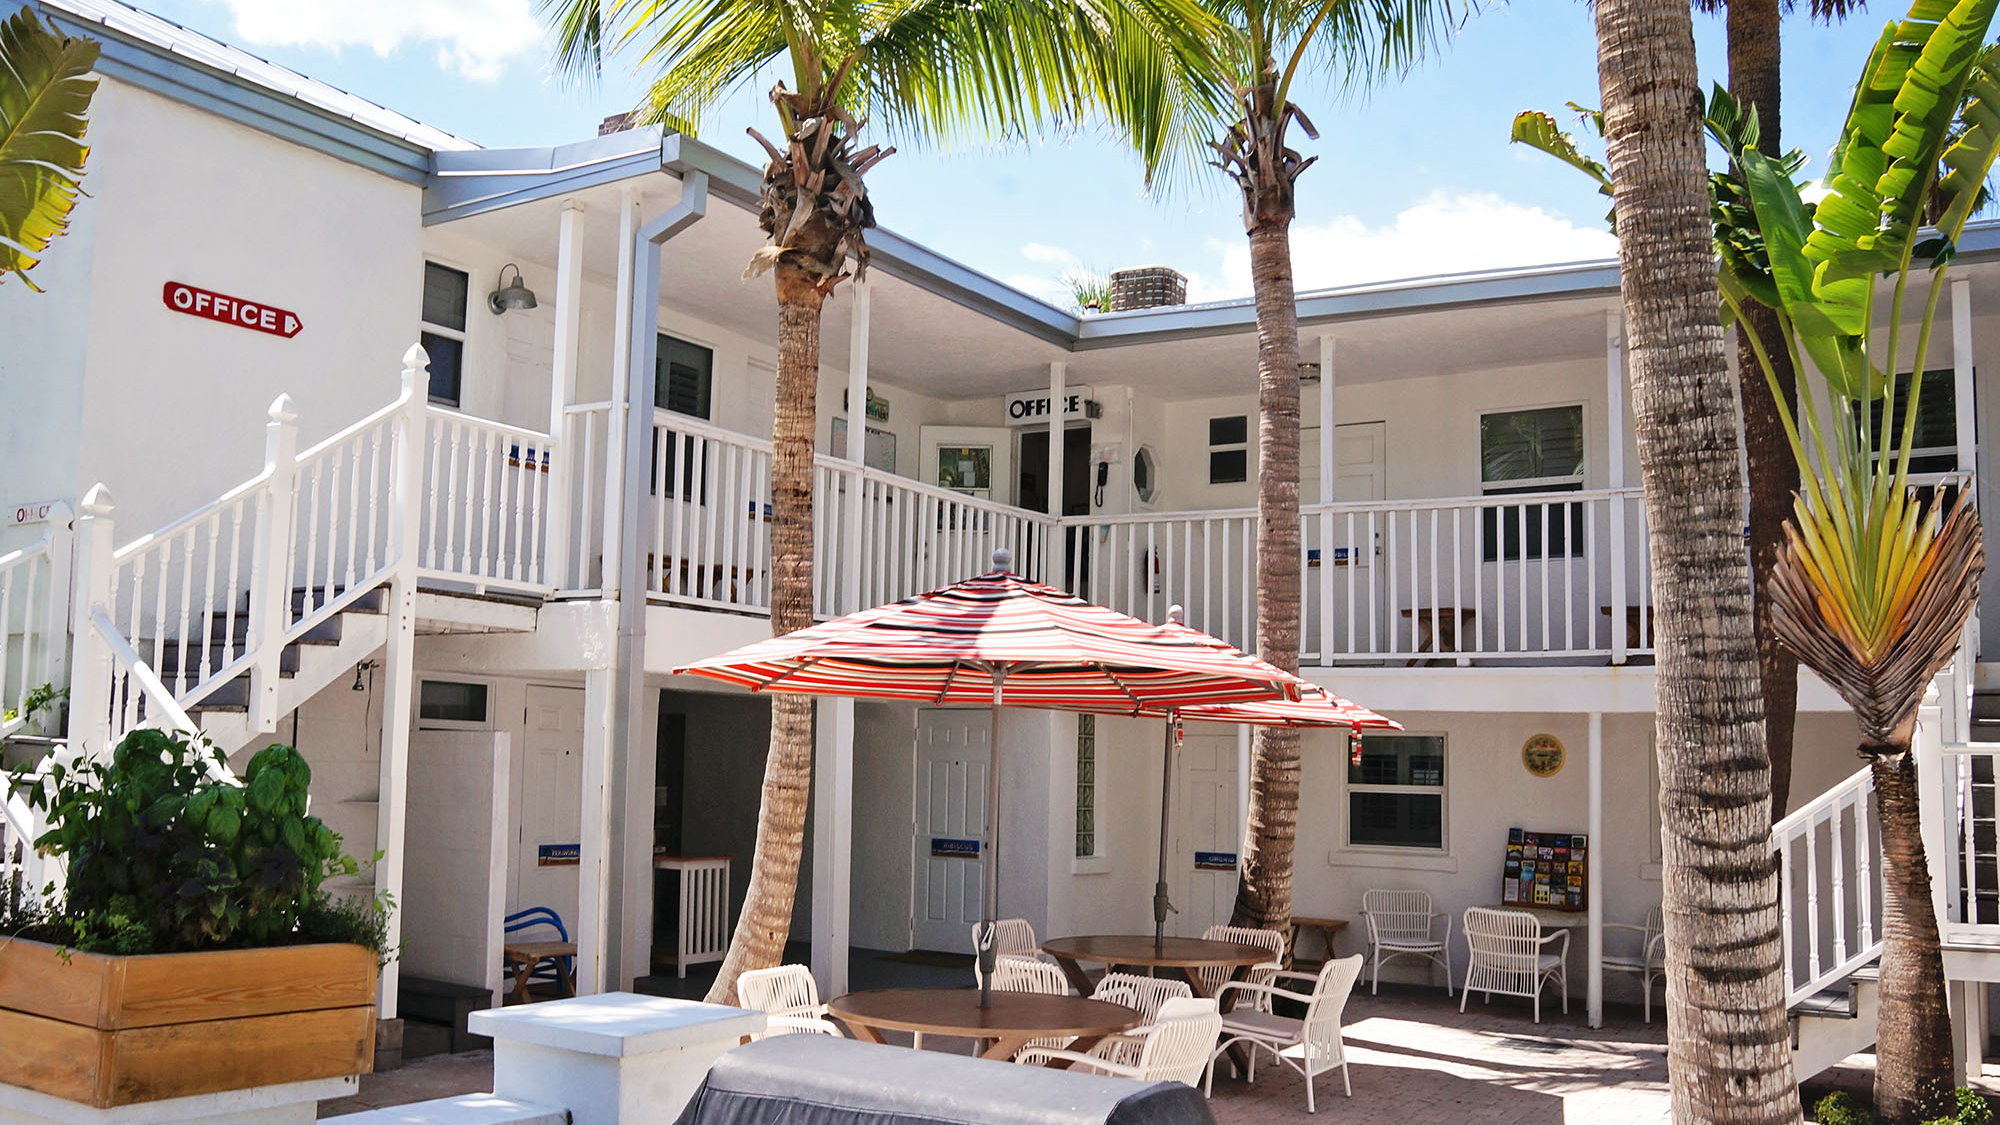 Inn on the Beach - St. Pete